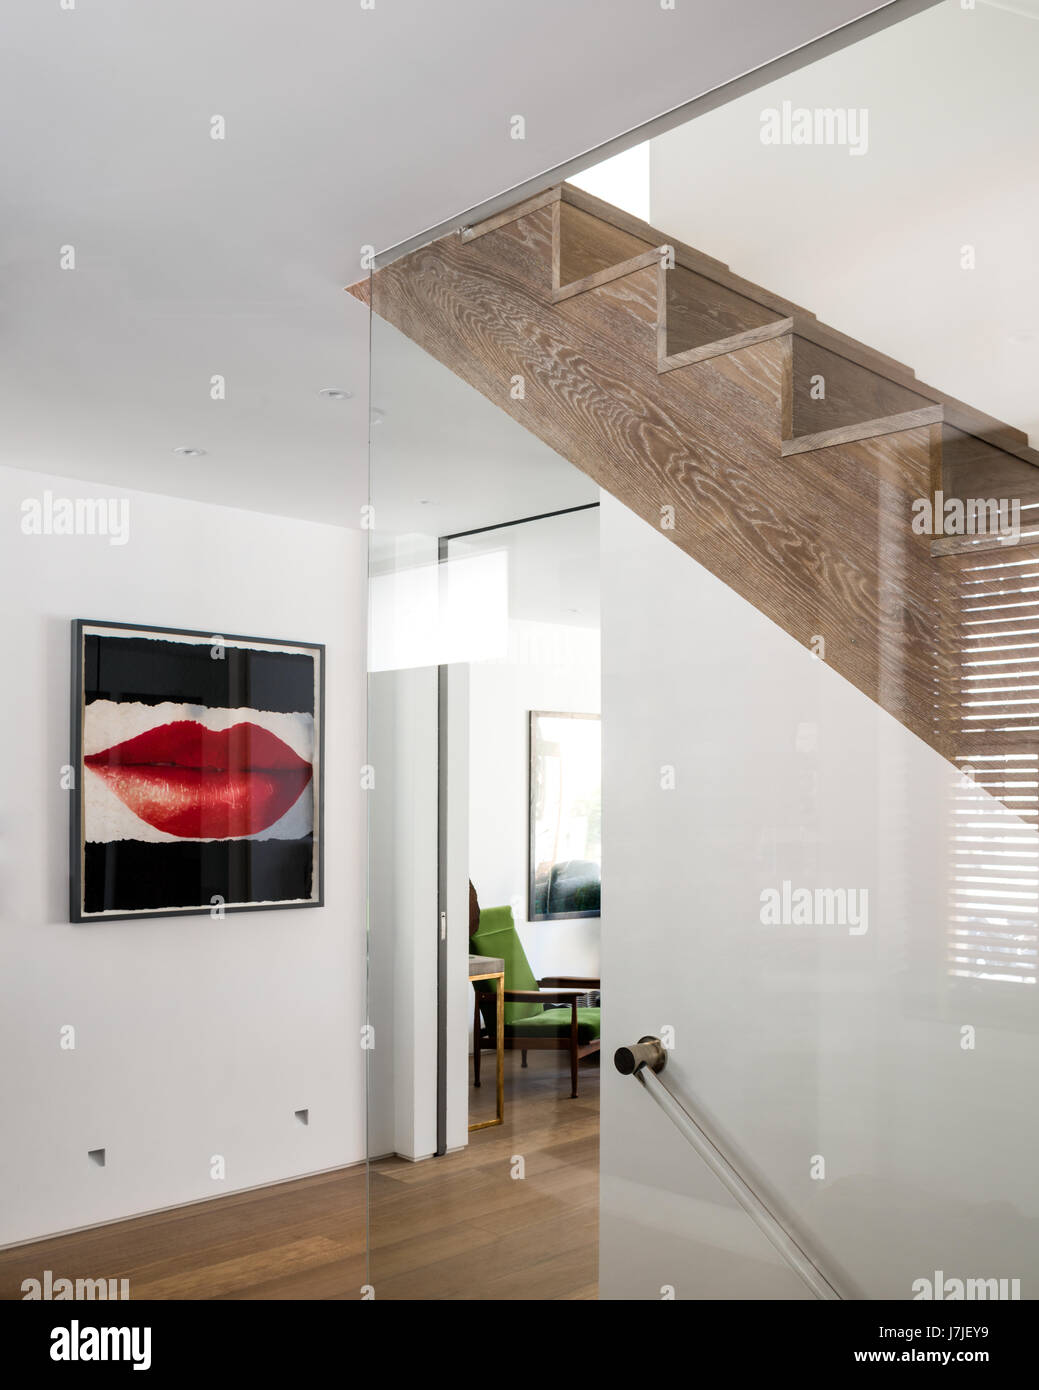 Large Lip Print By Daniel Kelly In Entrance Hall With